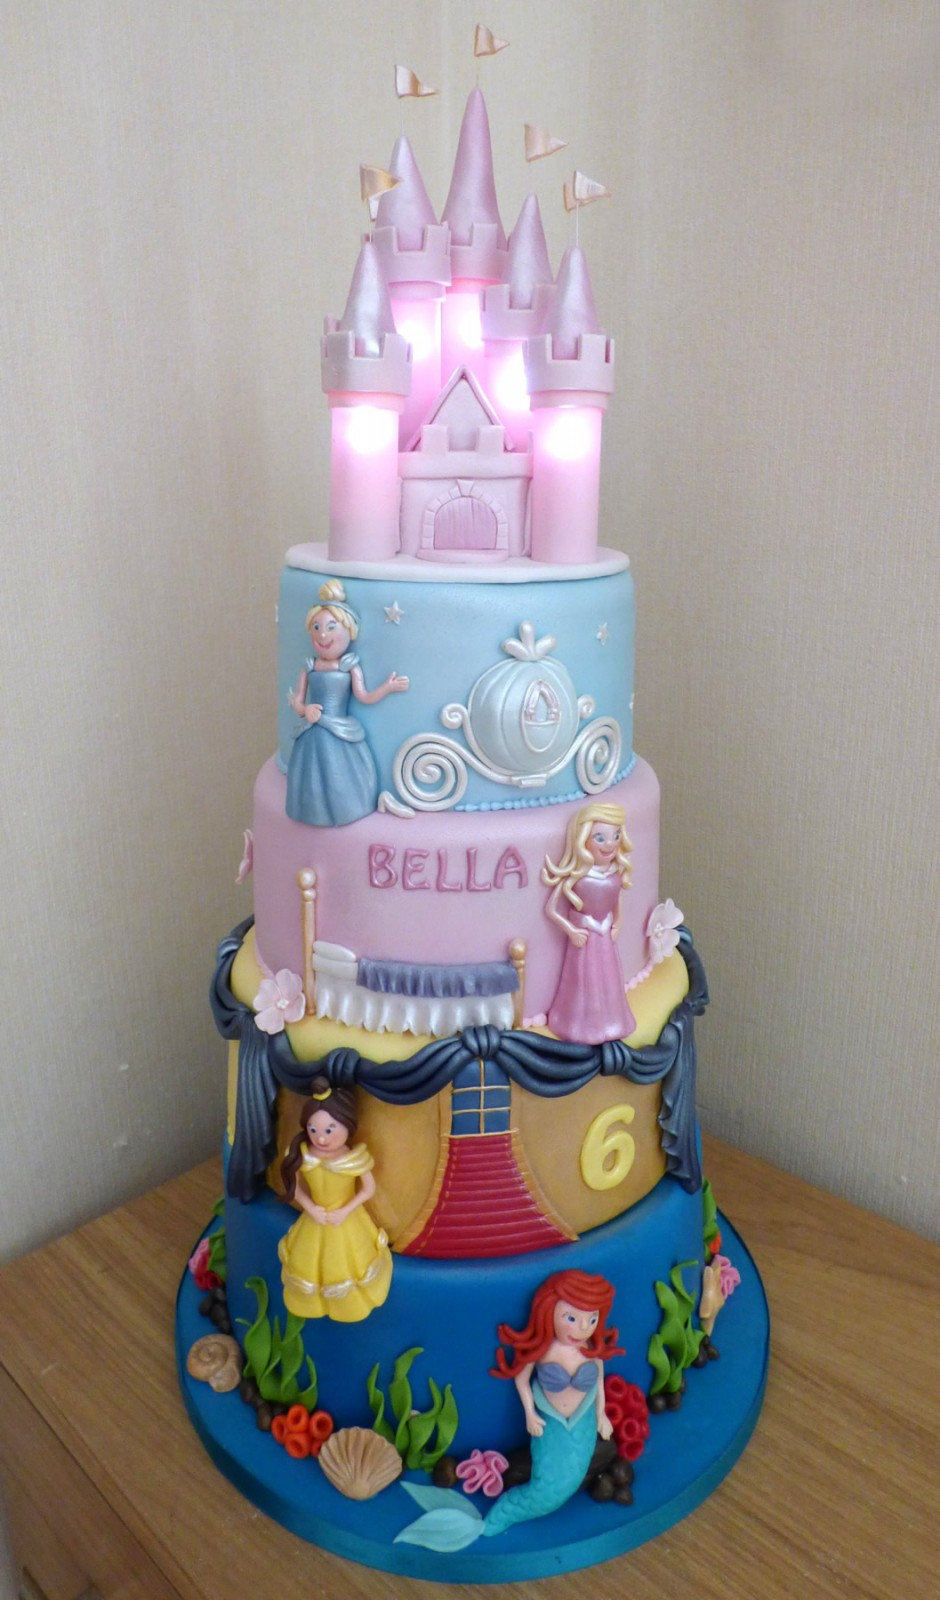 4 Tier Disney Princesses Birthday Cake With An Illuminated